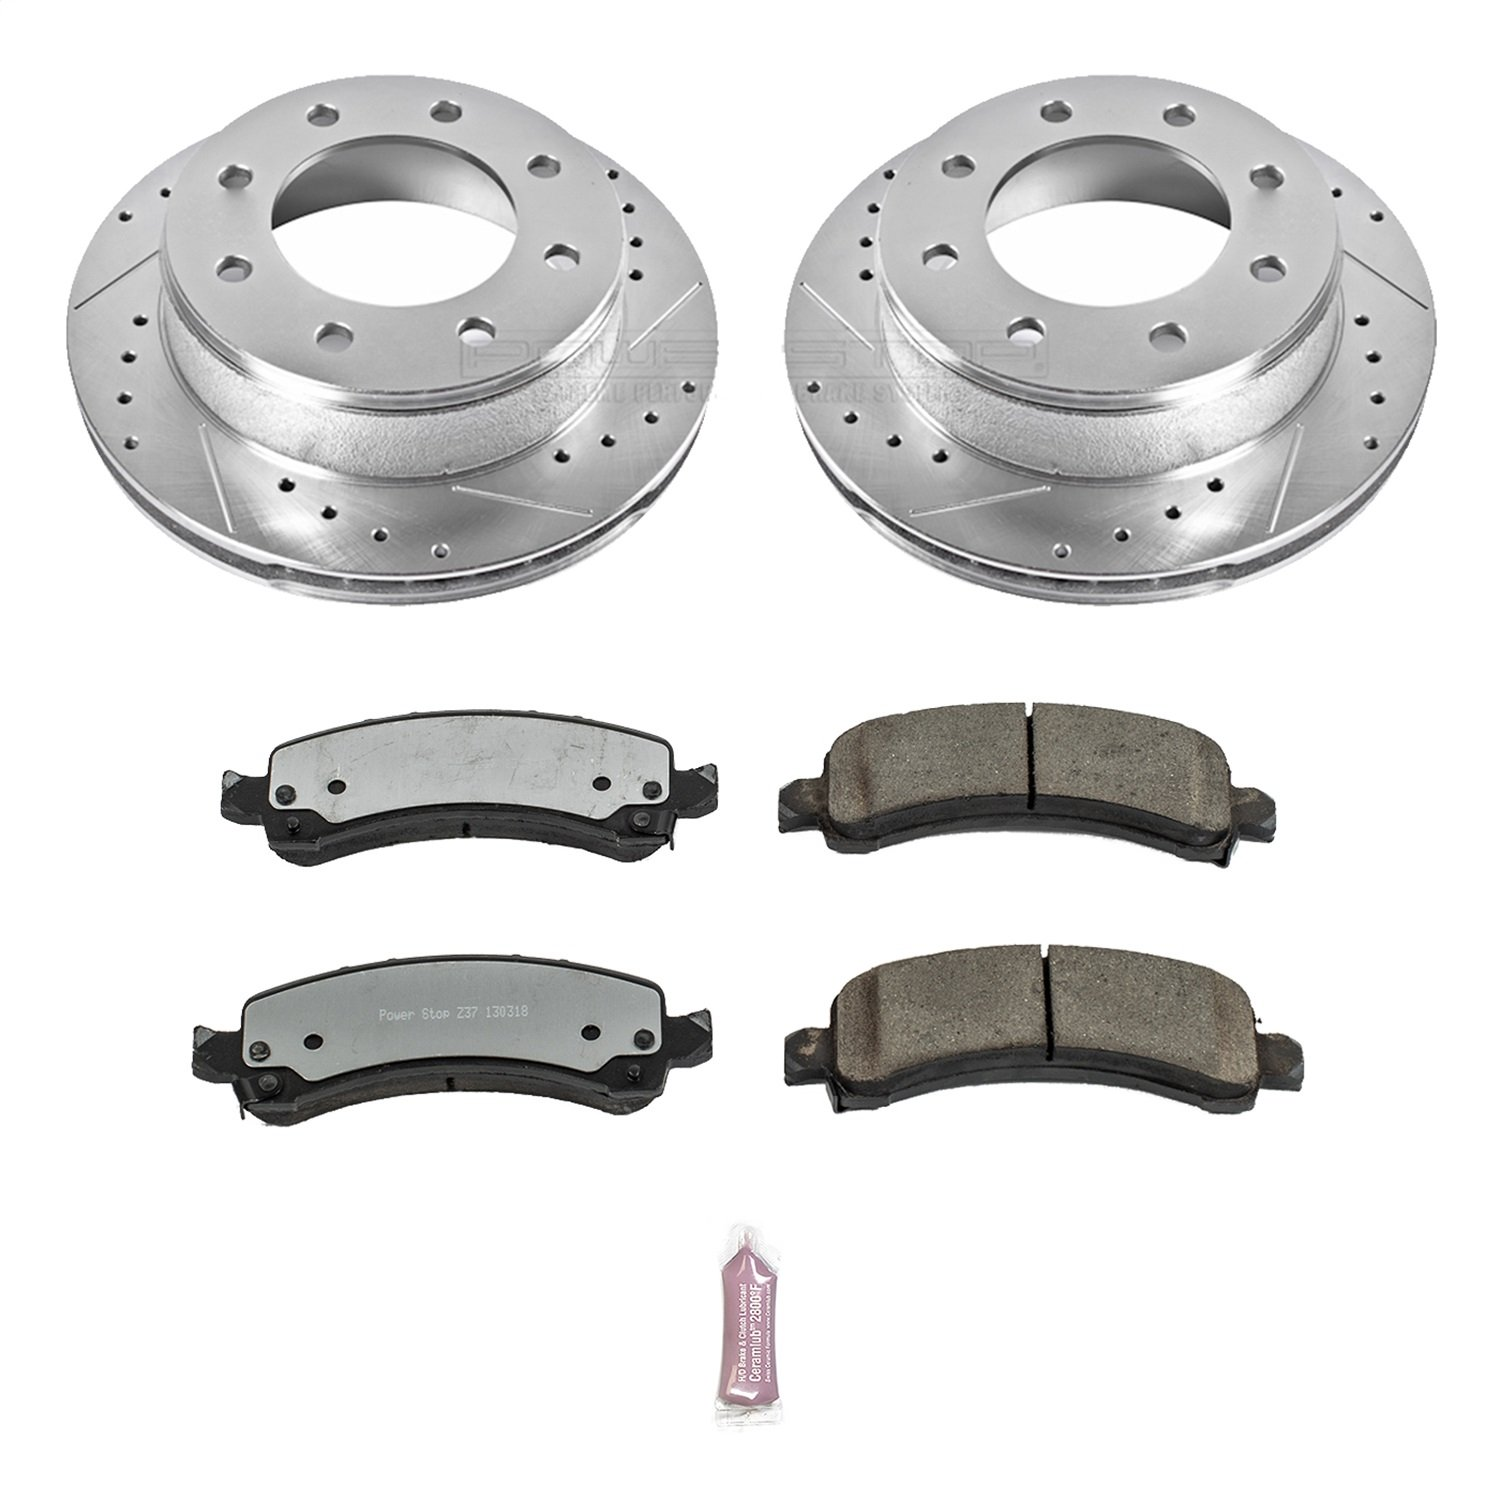 Power Stop K6251-37 Z37 Top Cop 1-Click Brake Kit by POWERSTOP